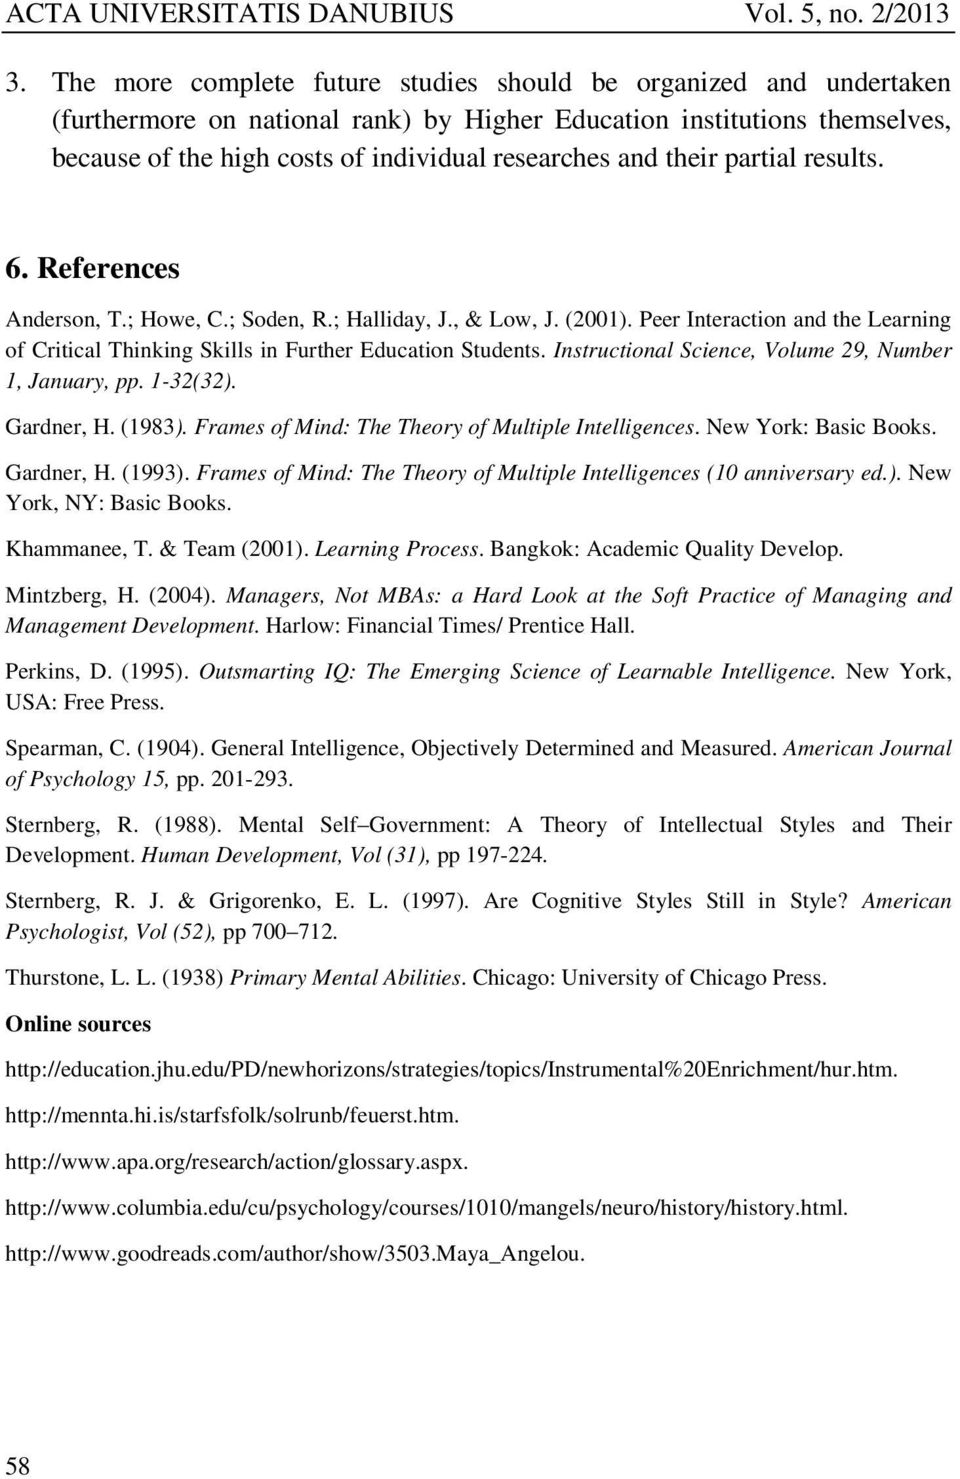 Instructional Science, Volume 29, Number 1, January, pp. 1-32(32). Gardner, H. (1983). Frames of Mind: The Theory of Multiple Intelligences. New York: Basic Books. Gardner, H. (1993).